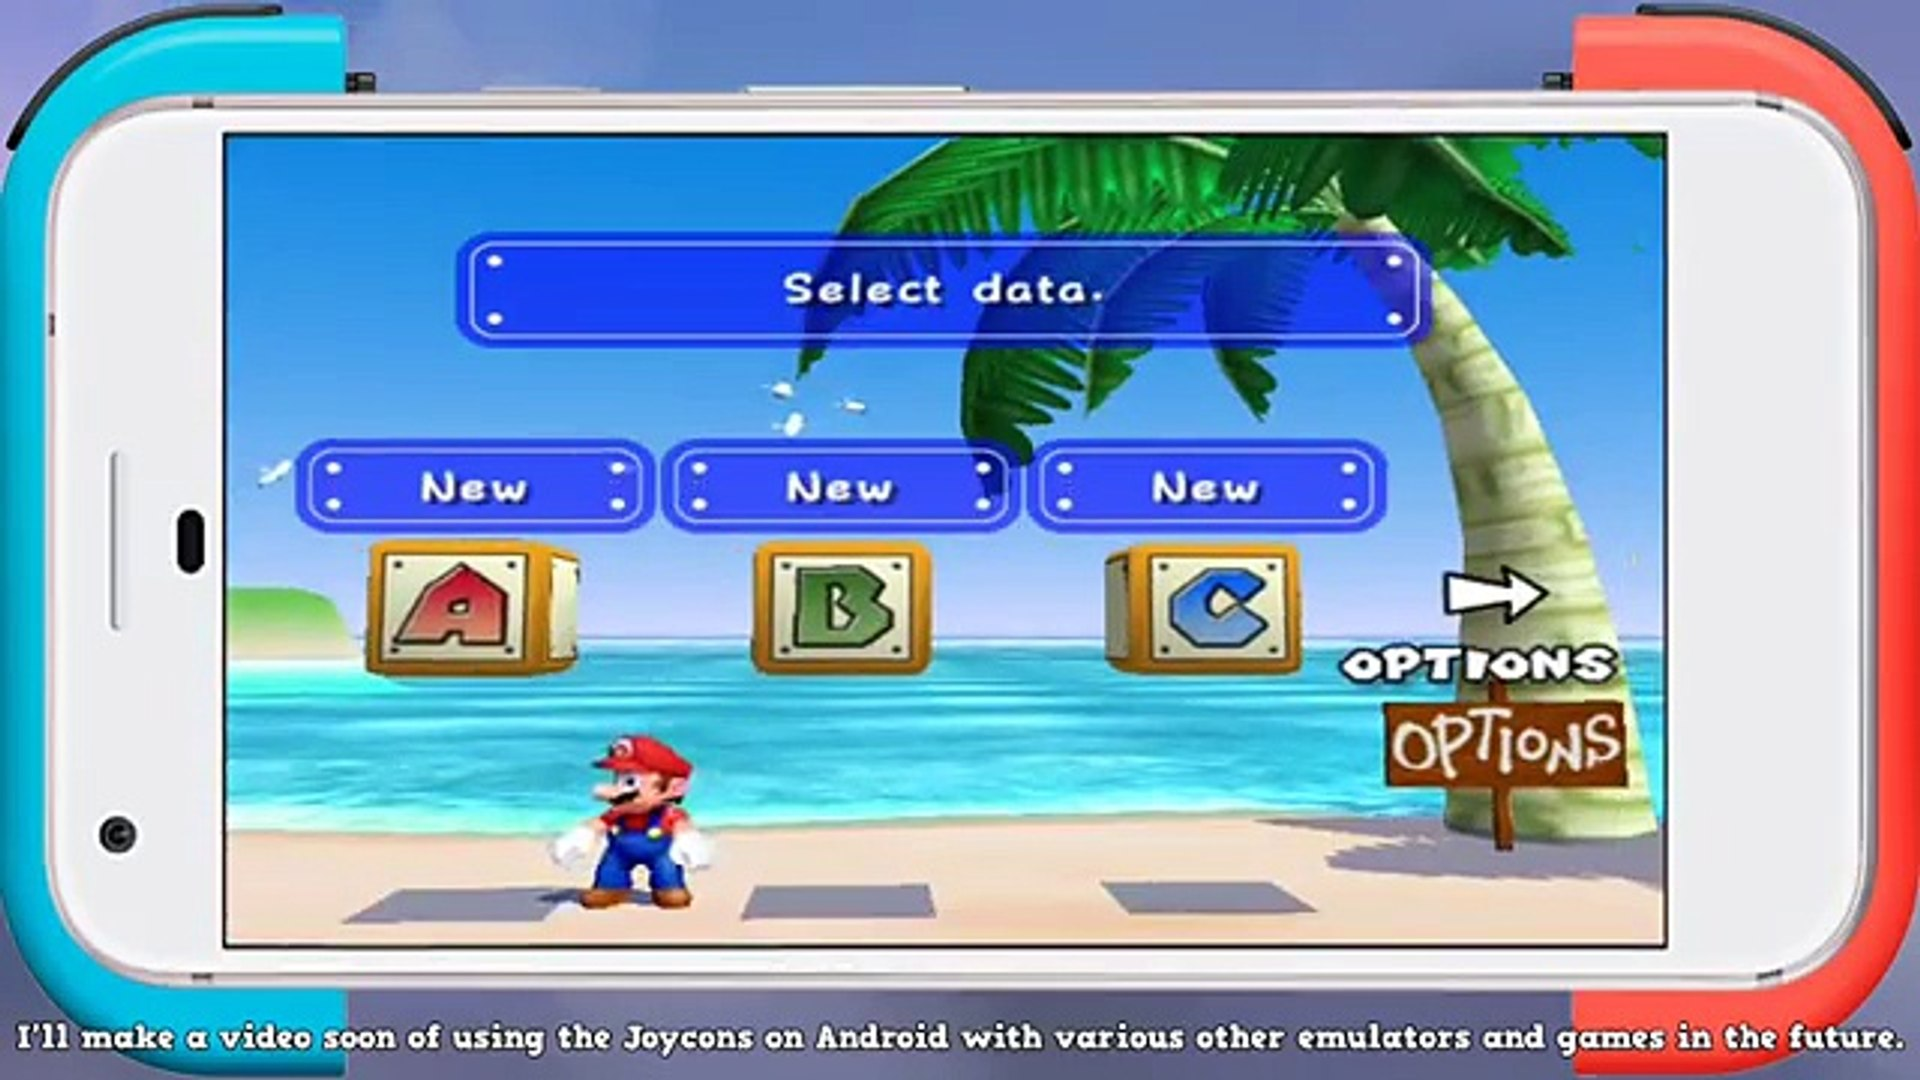 Super Mario Sunshine Multiplayer Mod on Android with Joycons | Dolphin  Emulator